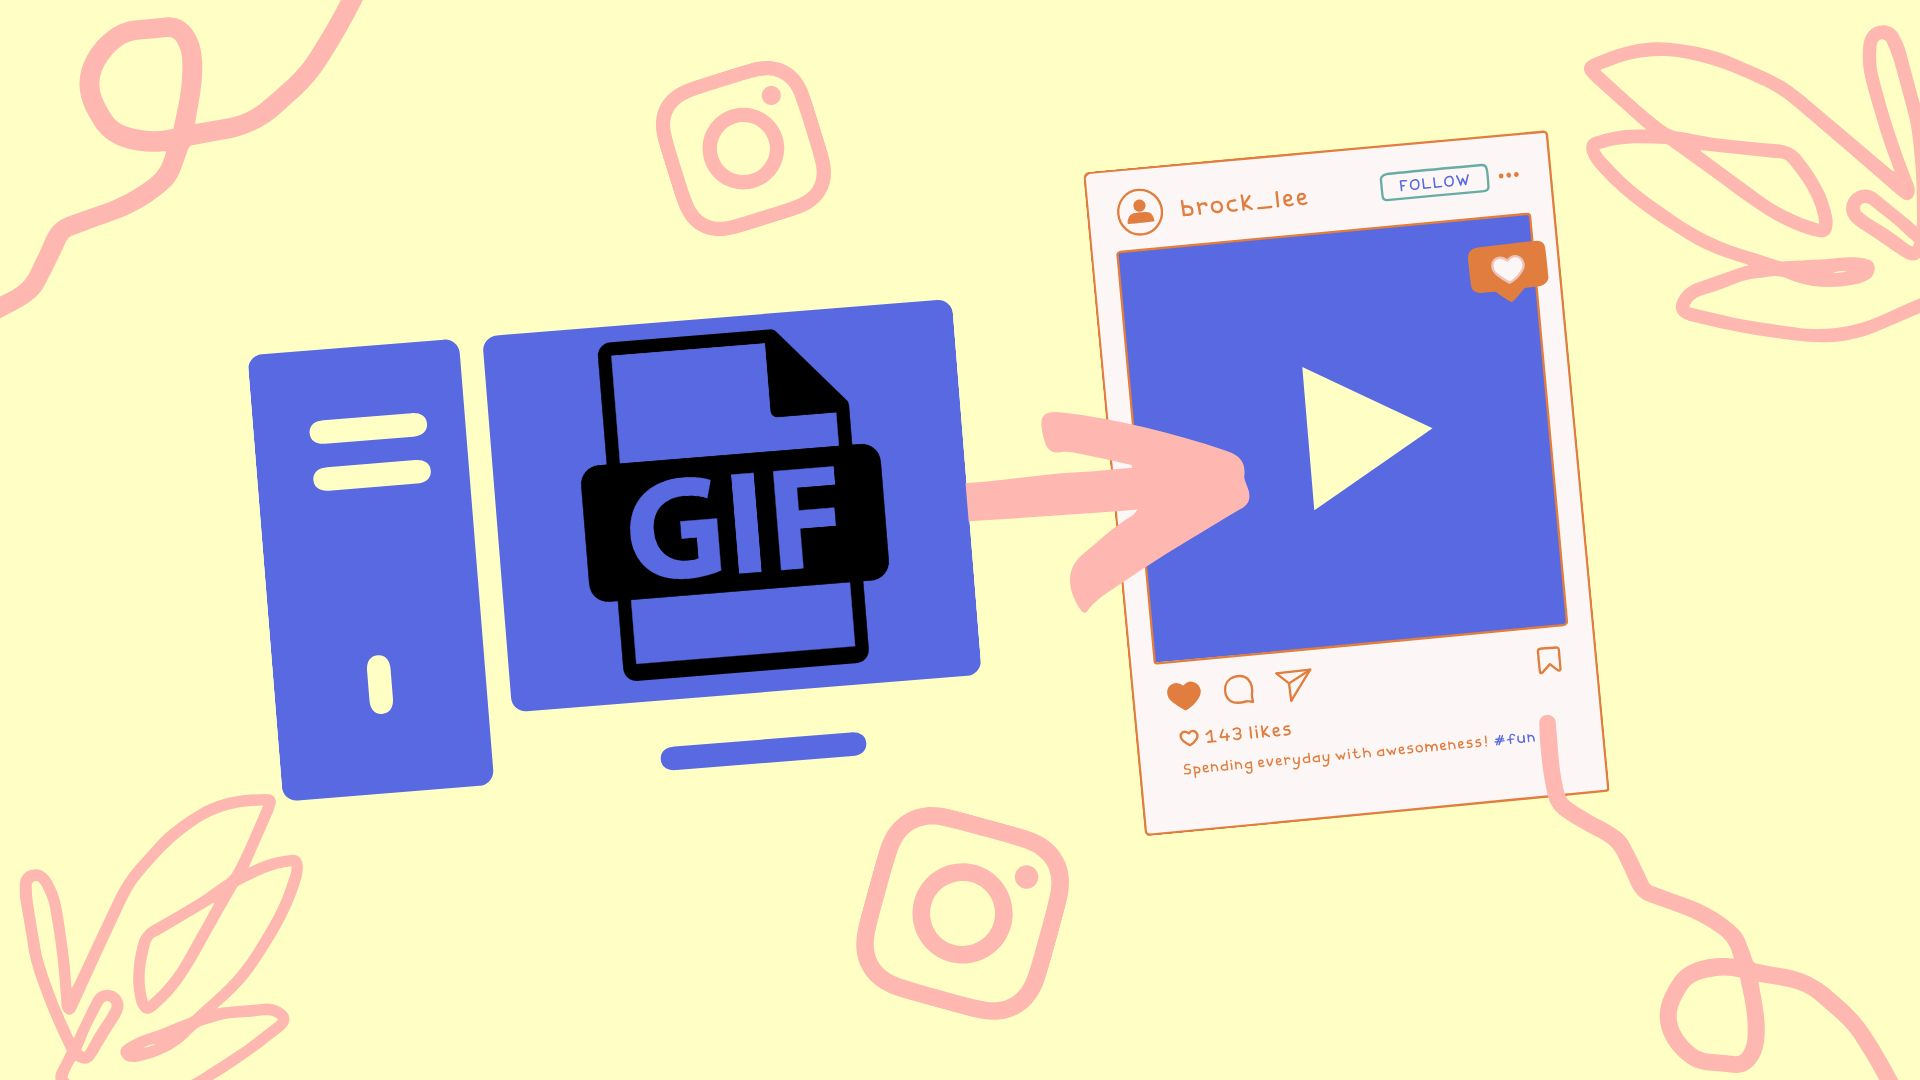 How to Post a GIF to Instagram or Snapchat